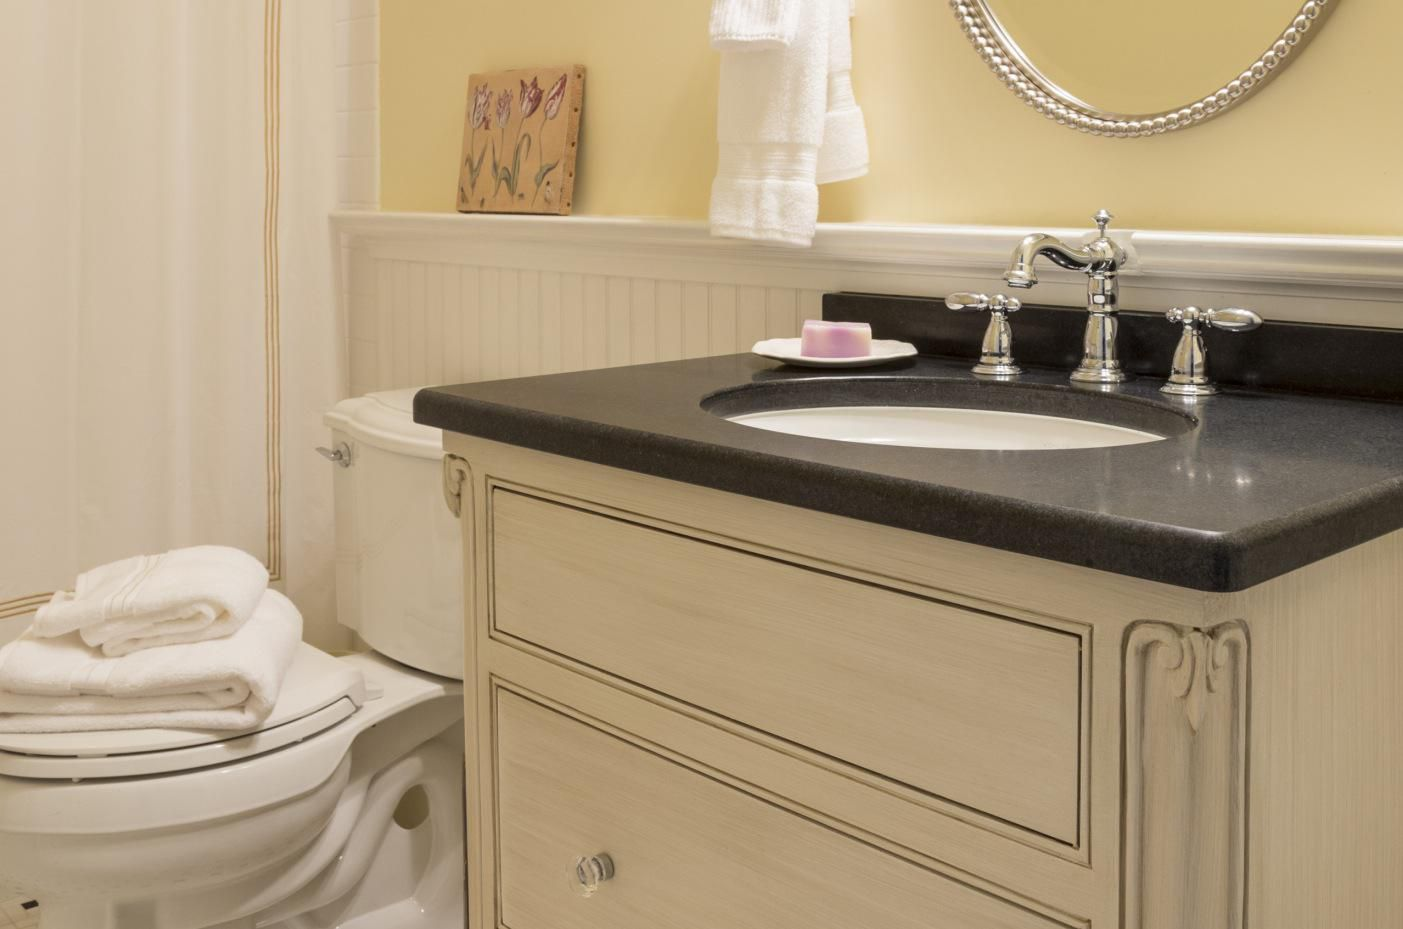 Remodel your small bathroom fast and inexpensively - 5x7 bathroom remodel pictures ...